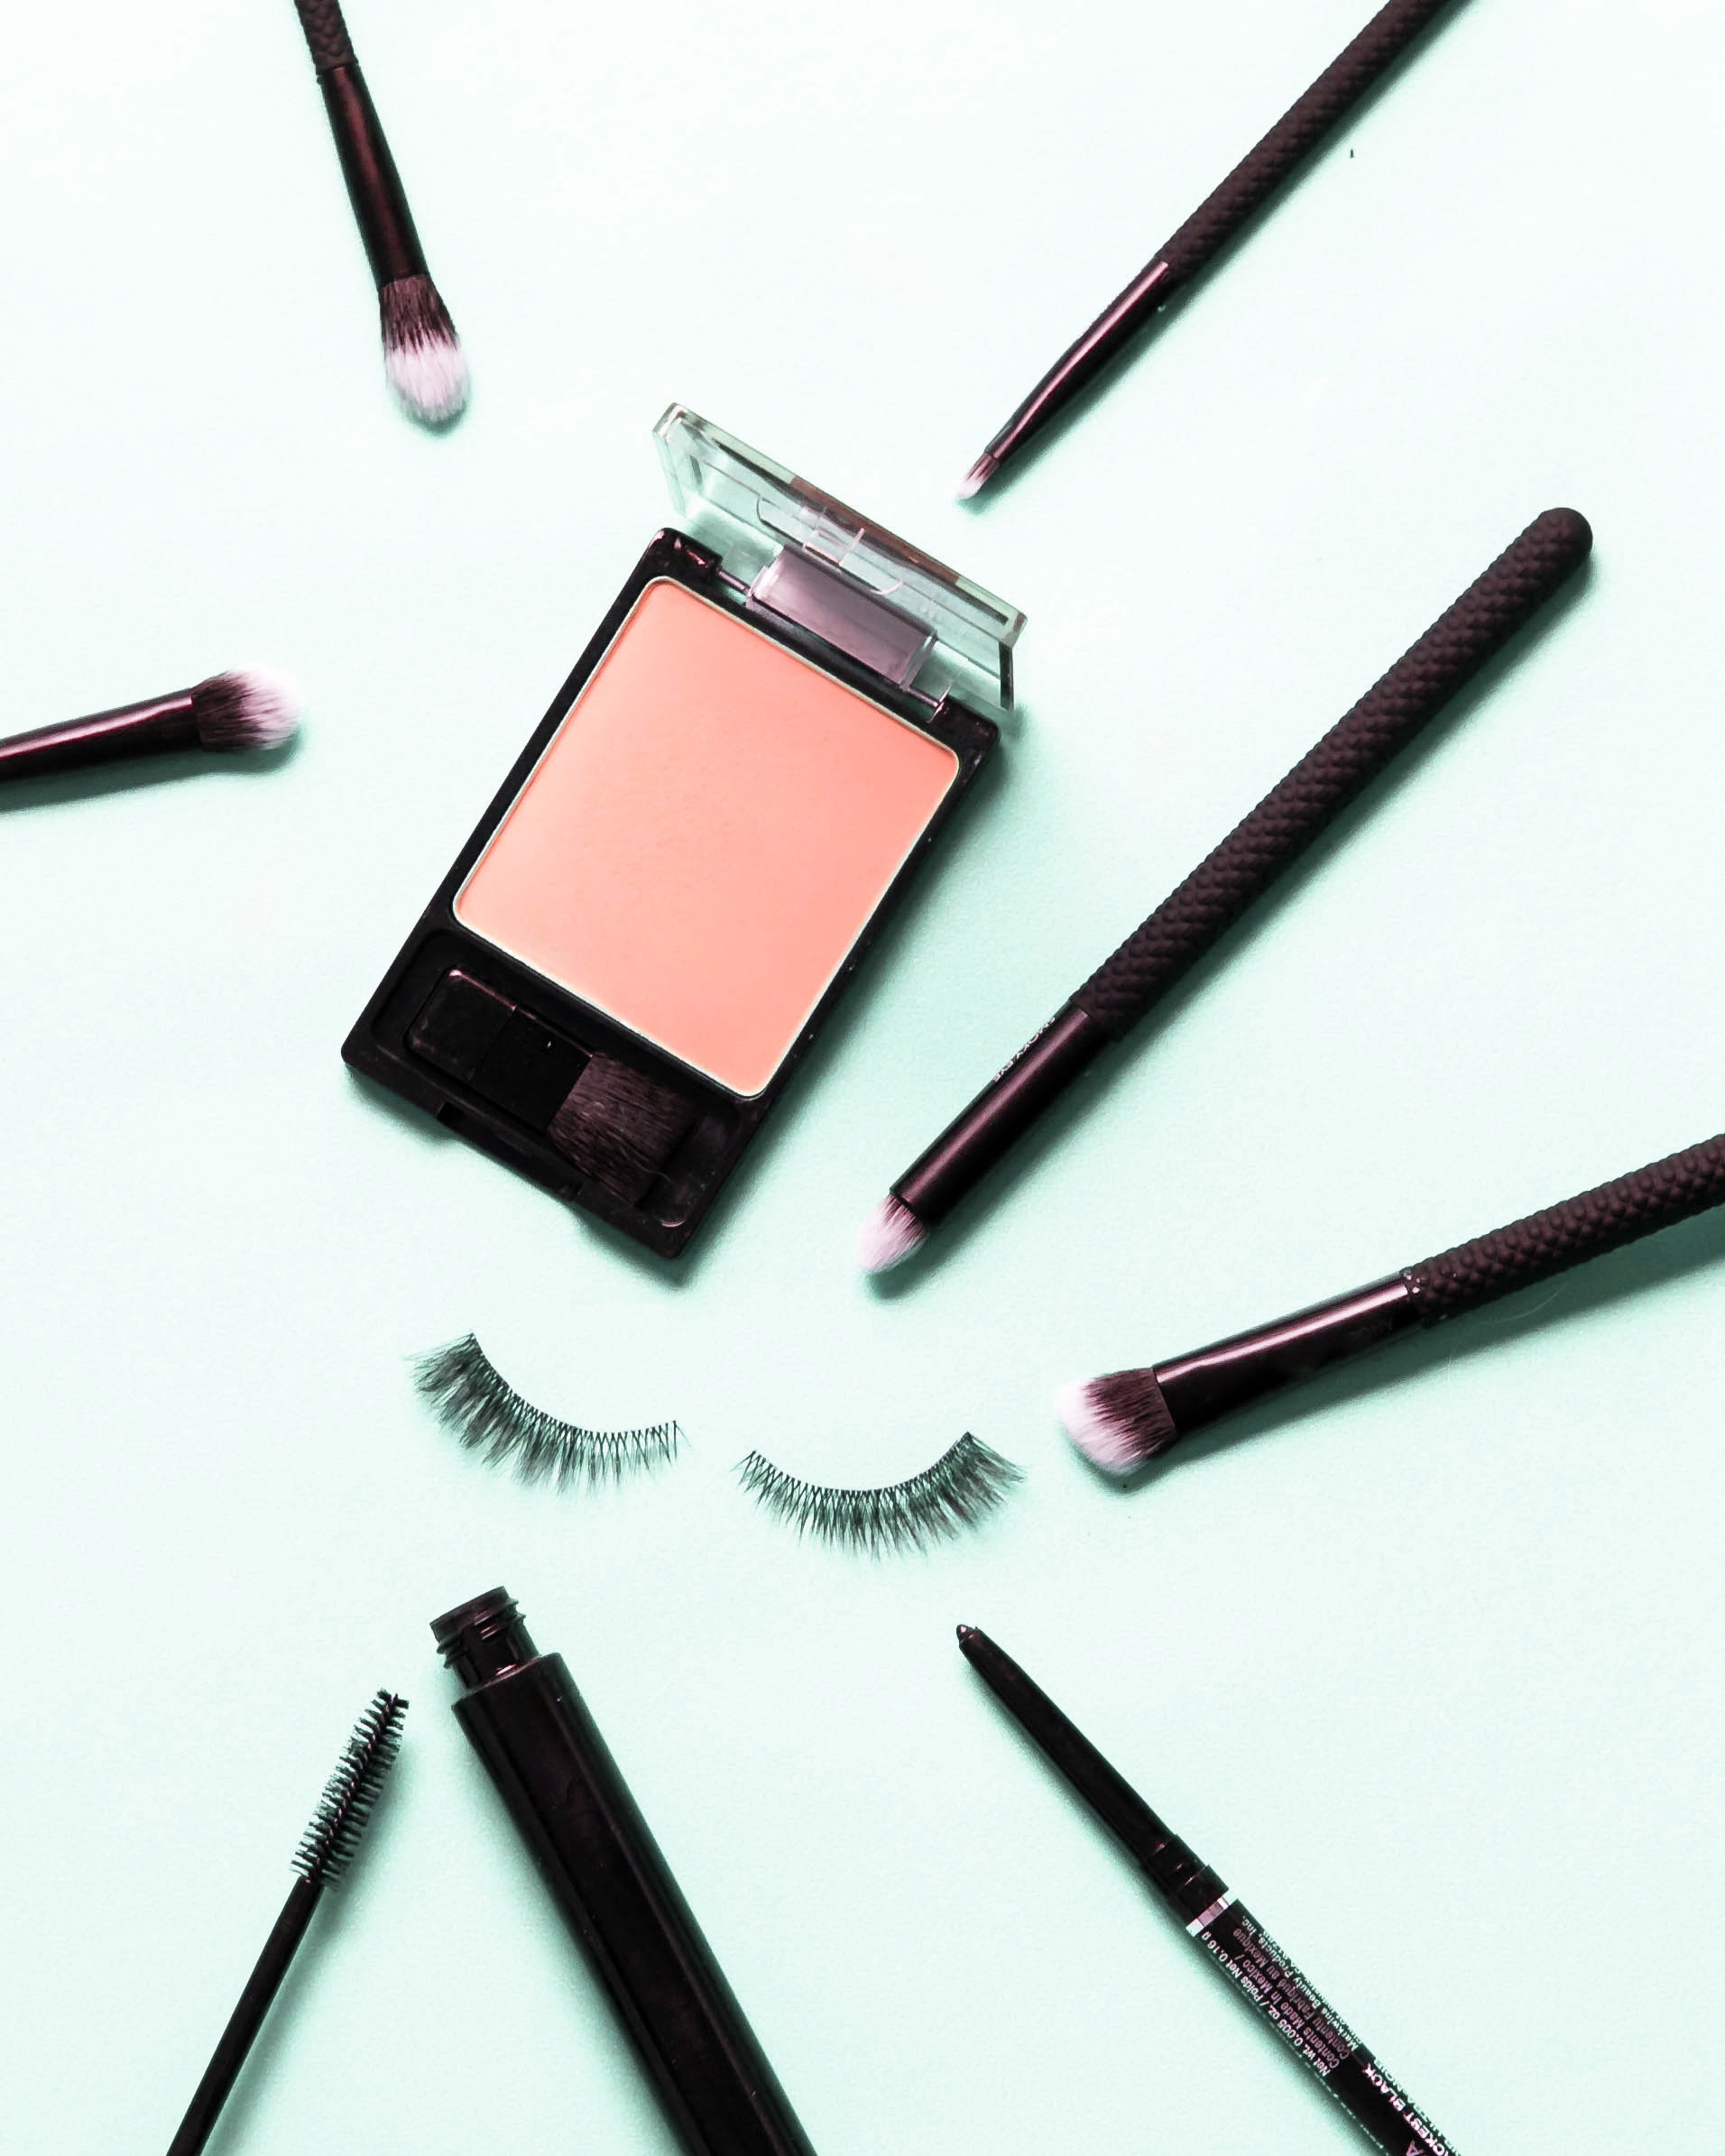 Mint Makeup Lashes Brushes and Blush.JPG